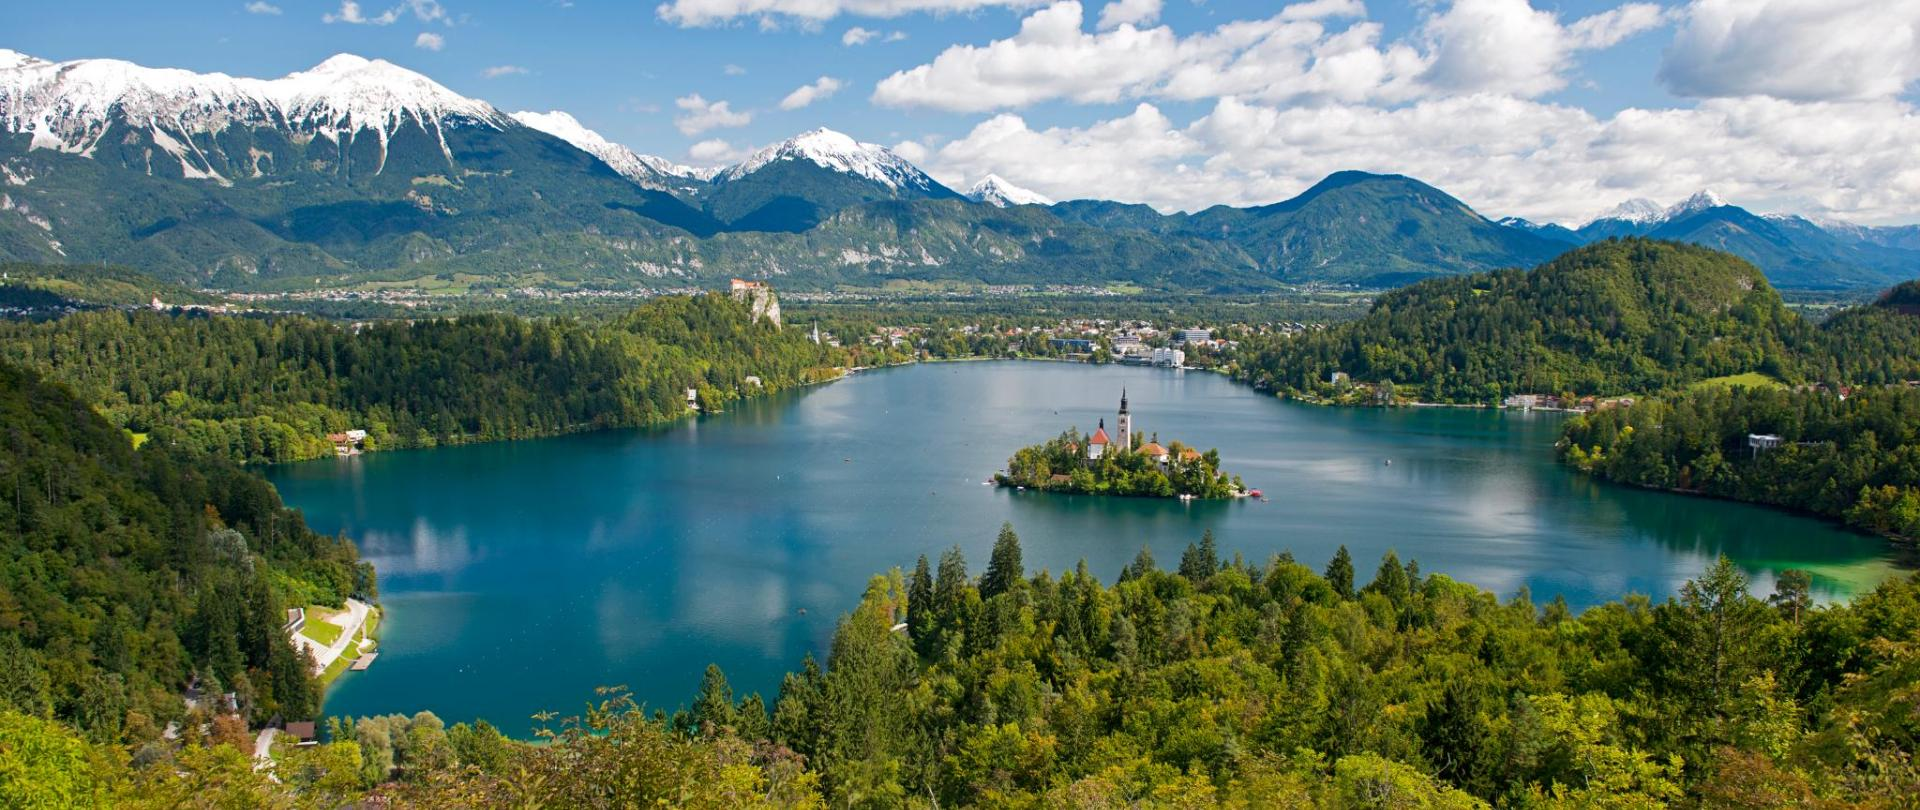 BLED_DSC7801-panoramica-LOW.jpg